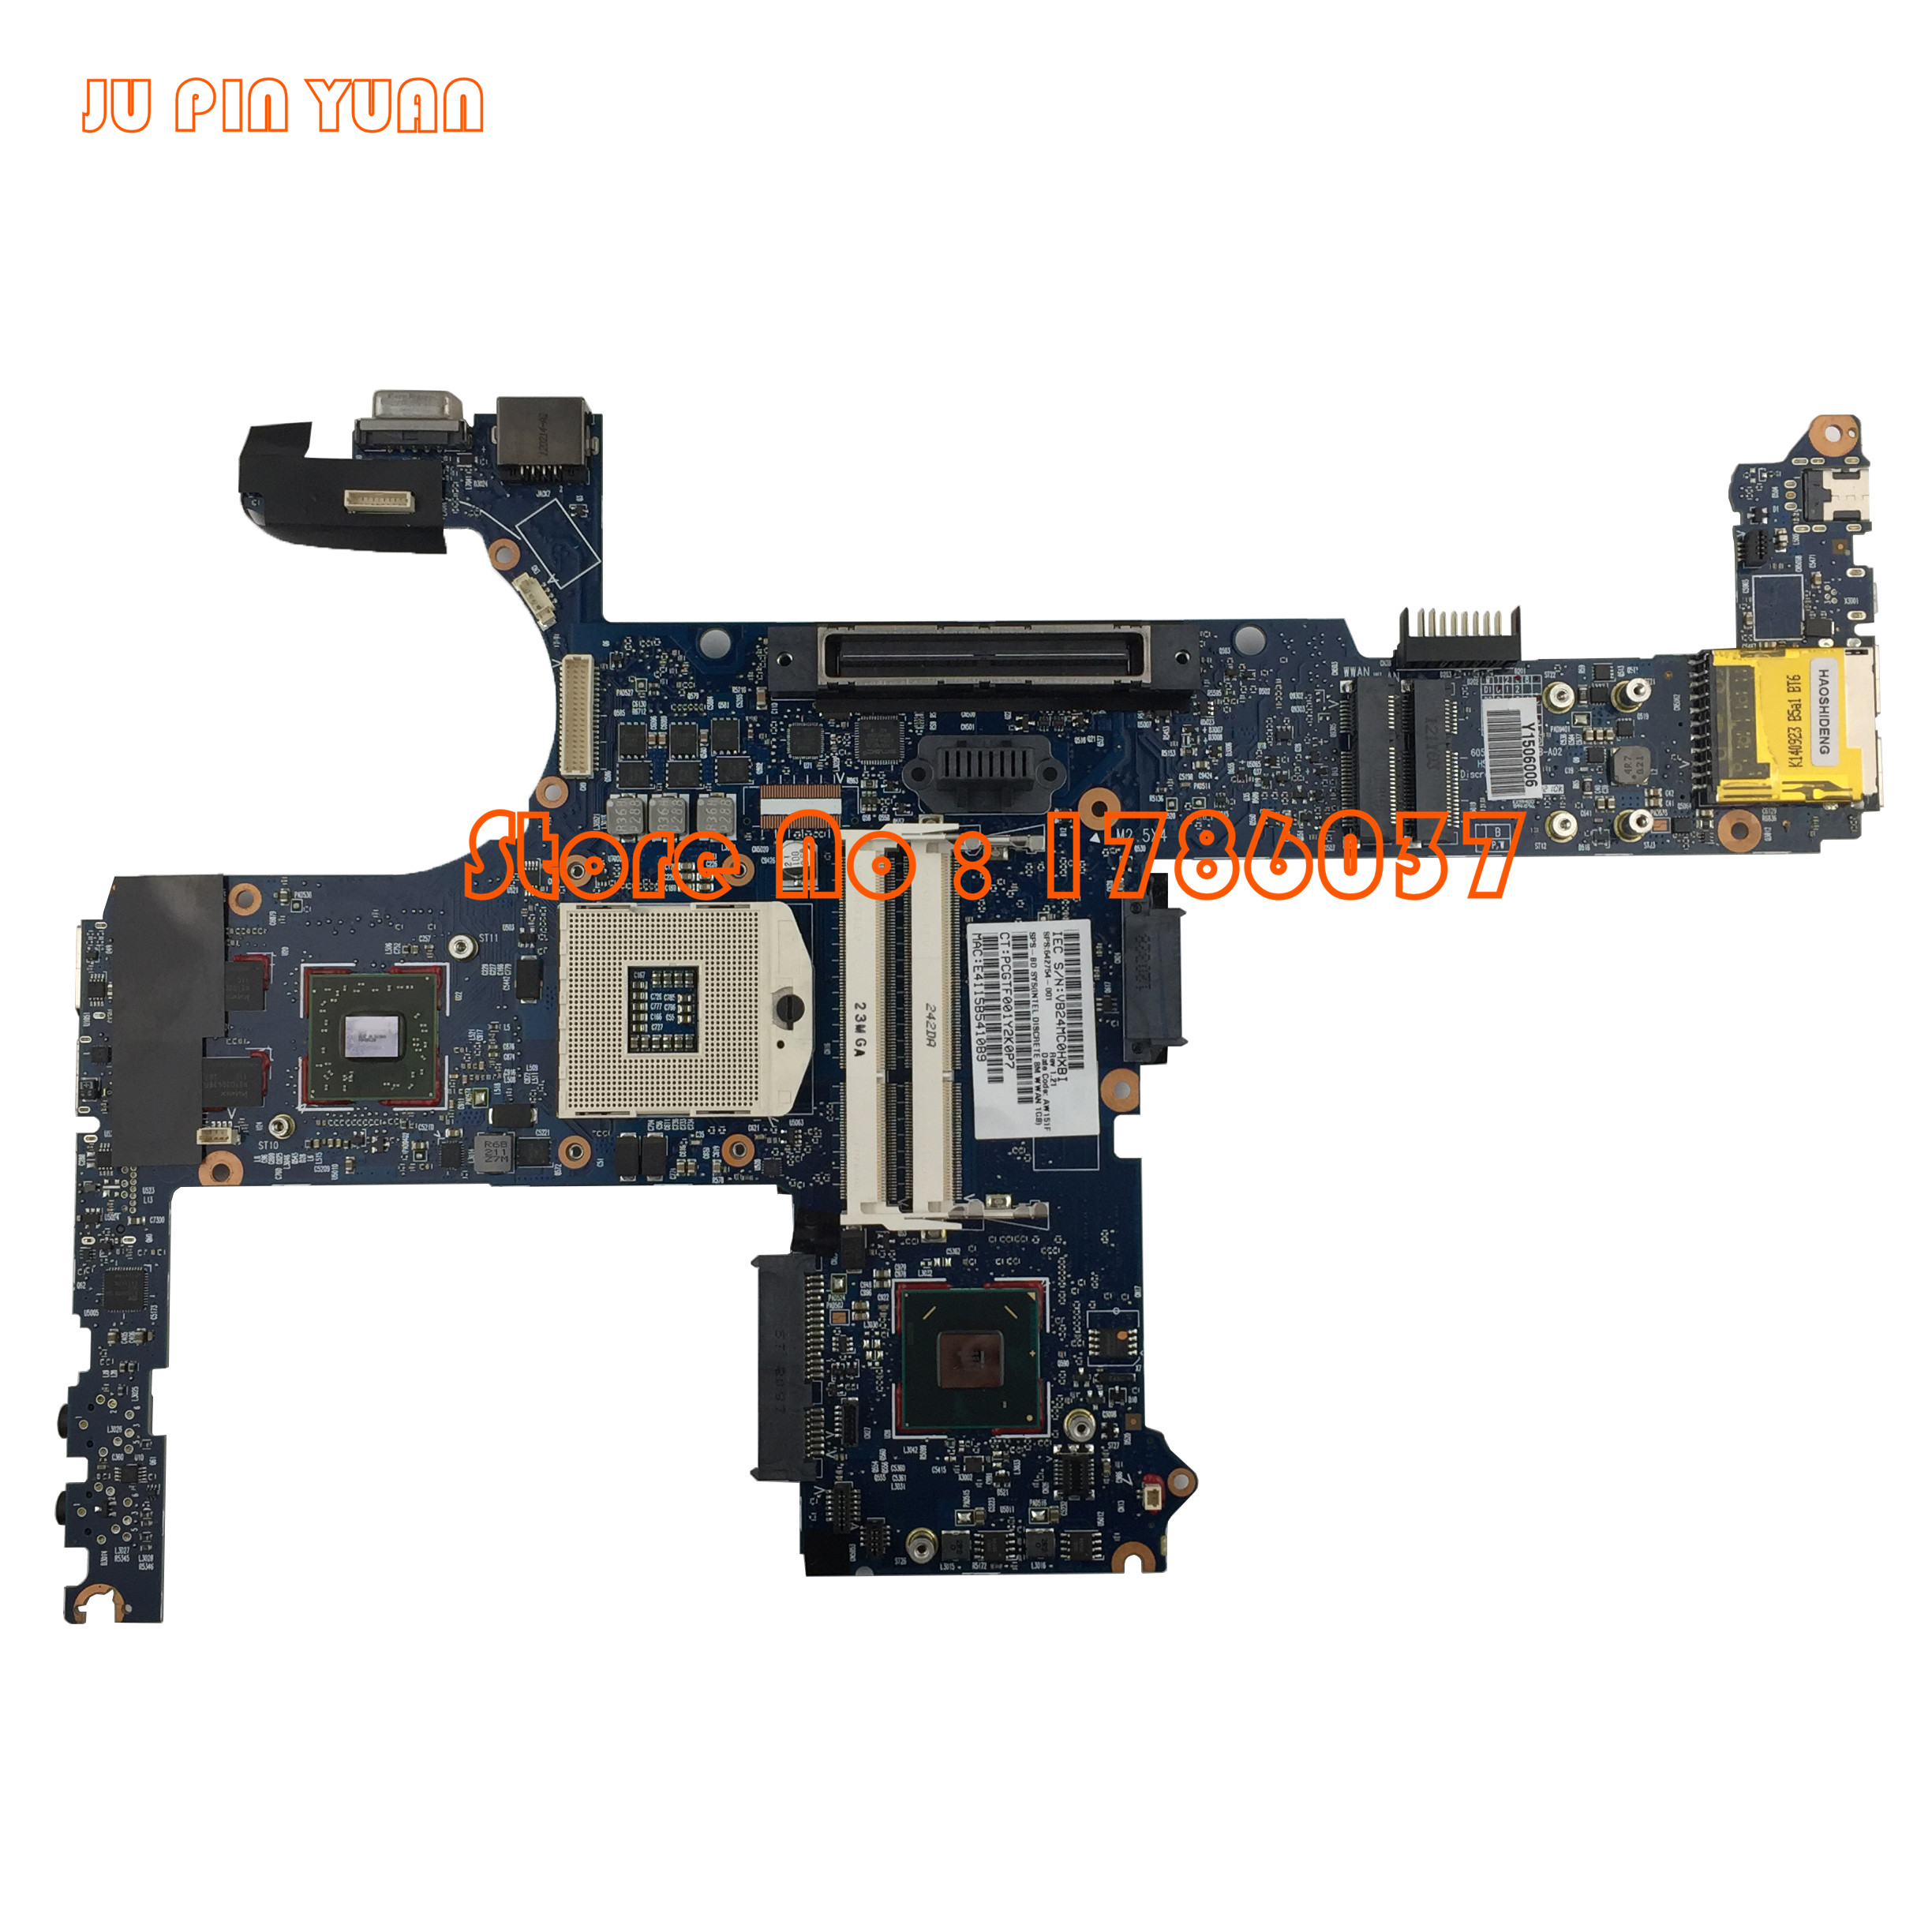 JU PIN YUAN 642754 001 6050A2398501 MB A02 For HP EliteBook 8460P 6460B Laptop Motherboard All